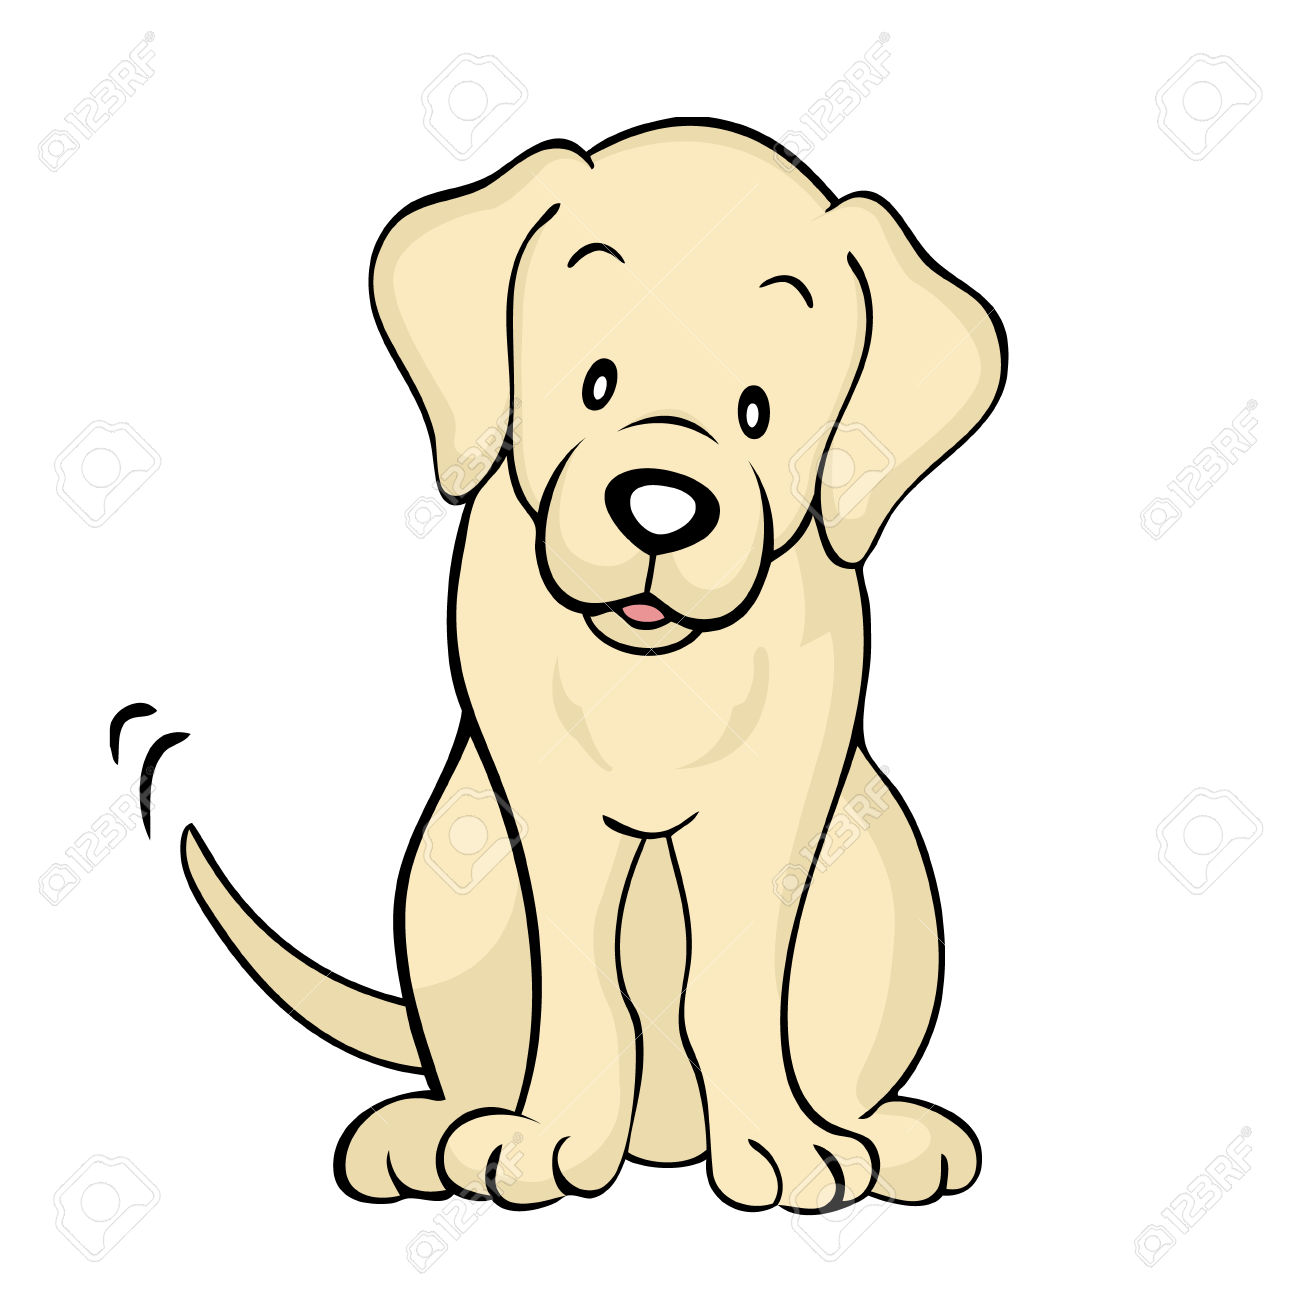 easy dog clipart at getdrawings com free for personal use easy dog rh getdrawings com Puppy Clip Art Simple Dog Drawings